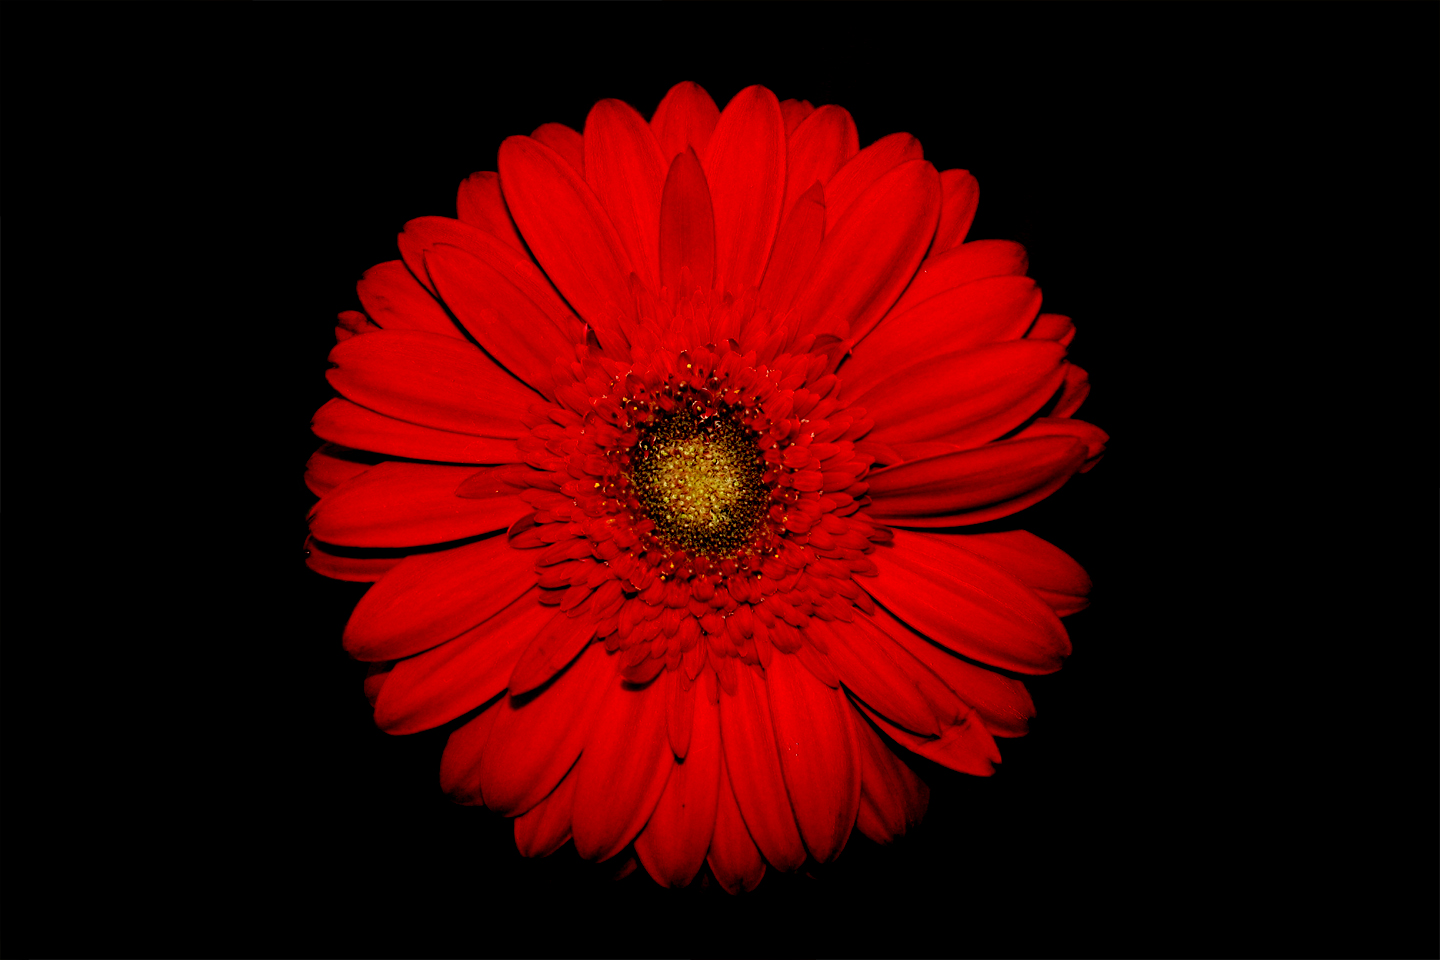 Red flower wallpaper 1440x960 78403 - Red flower desktop wallpaper ...